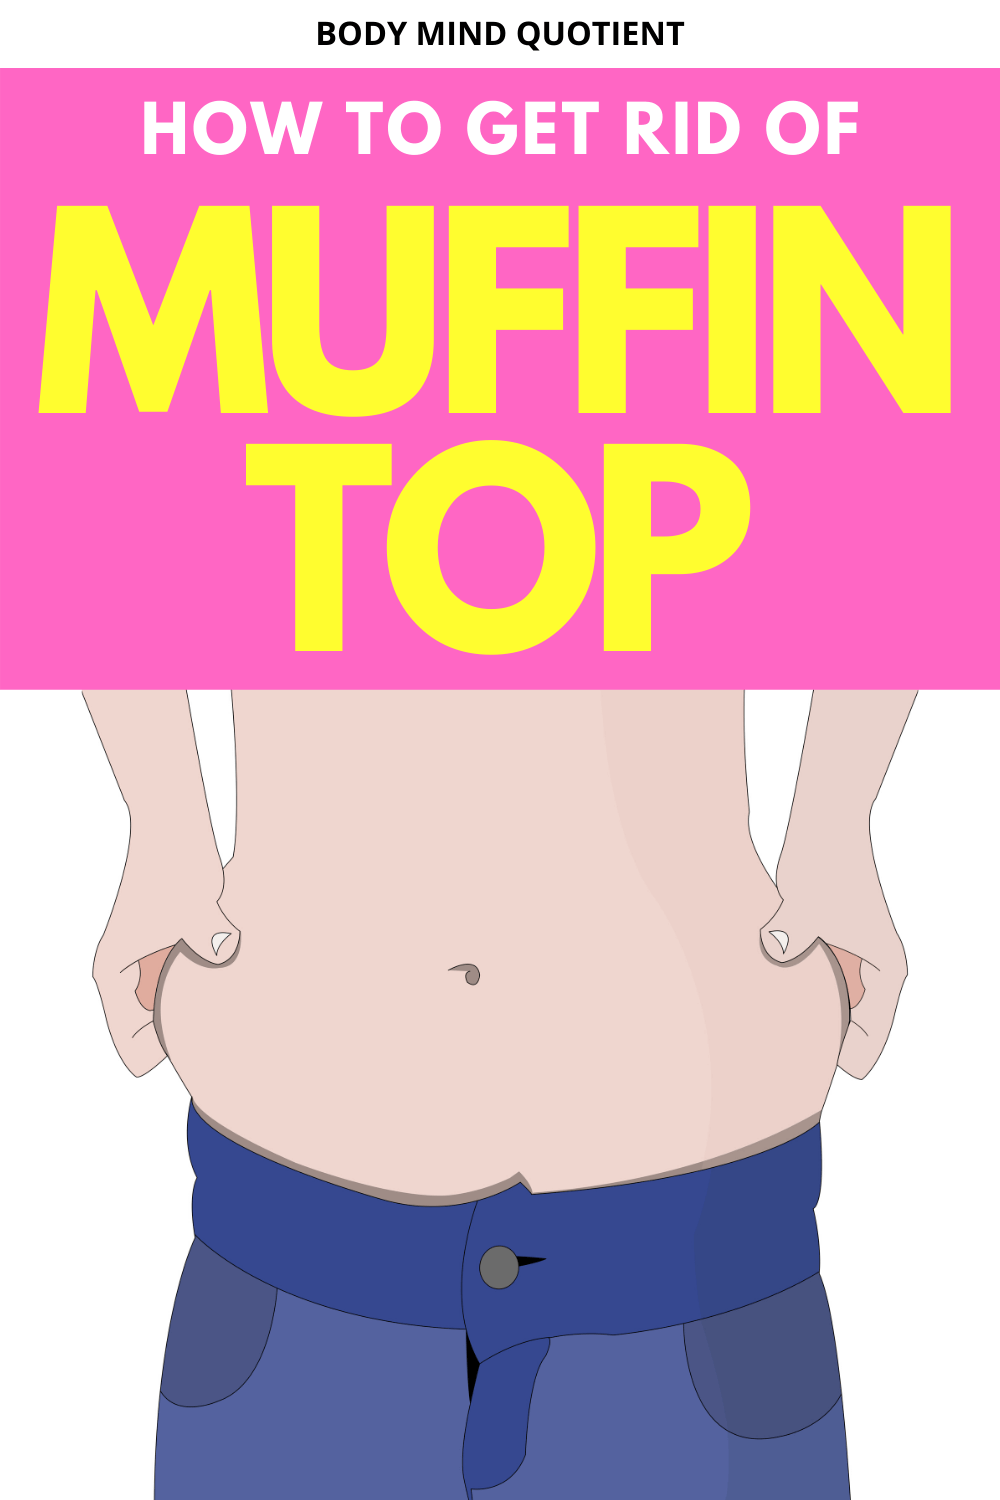 How To Get Rid Of Muffin Top? — BODY MIND QUOTIENT